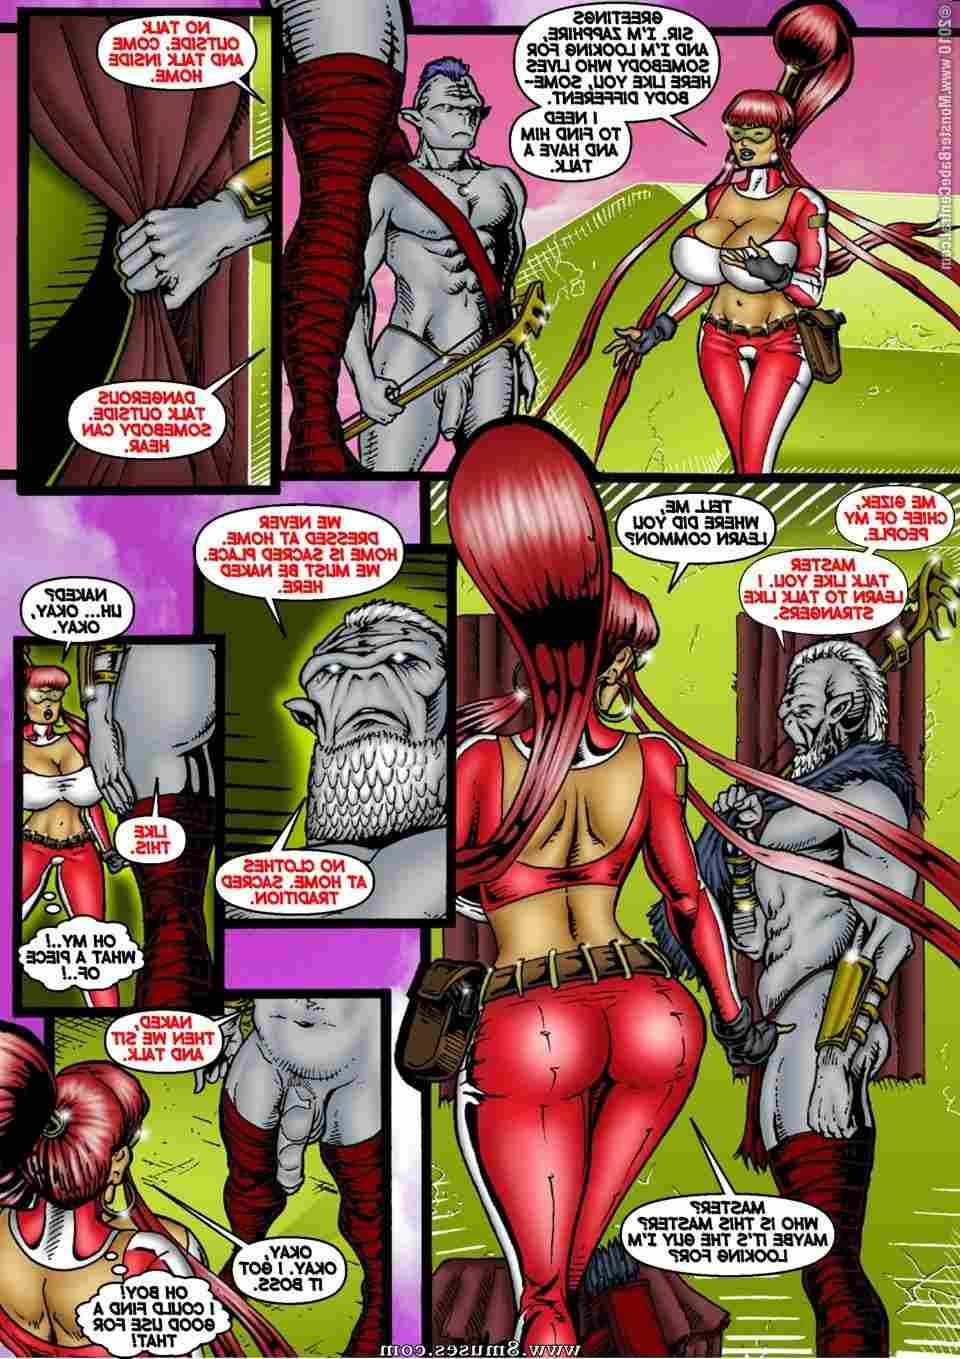 Central-Comics/Space-Babe-Central/Alien-Huntress Alien_Huntress__8muses_-_Sex_and_Porn_Comics_122.jpg